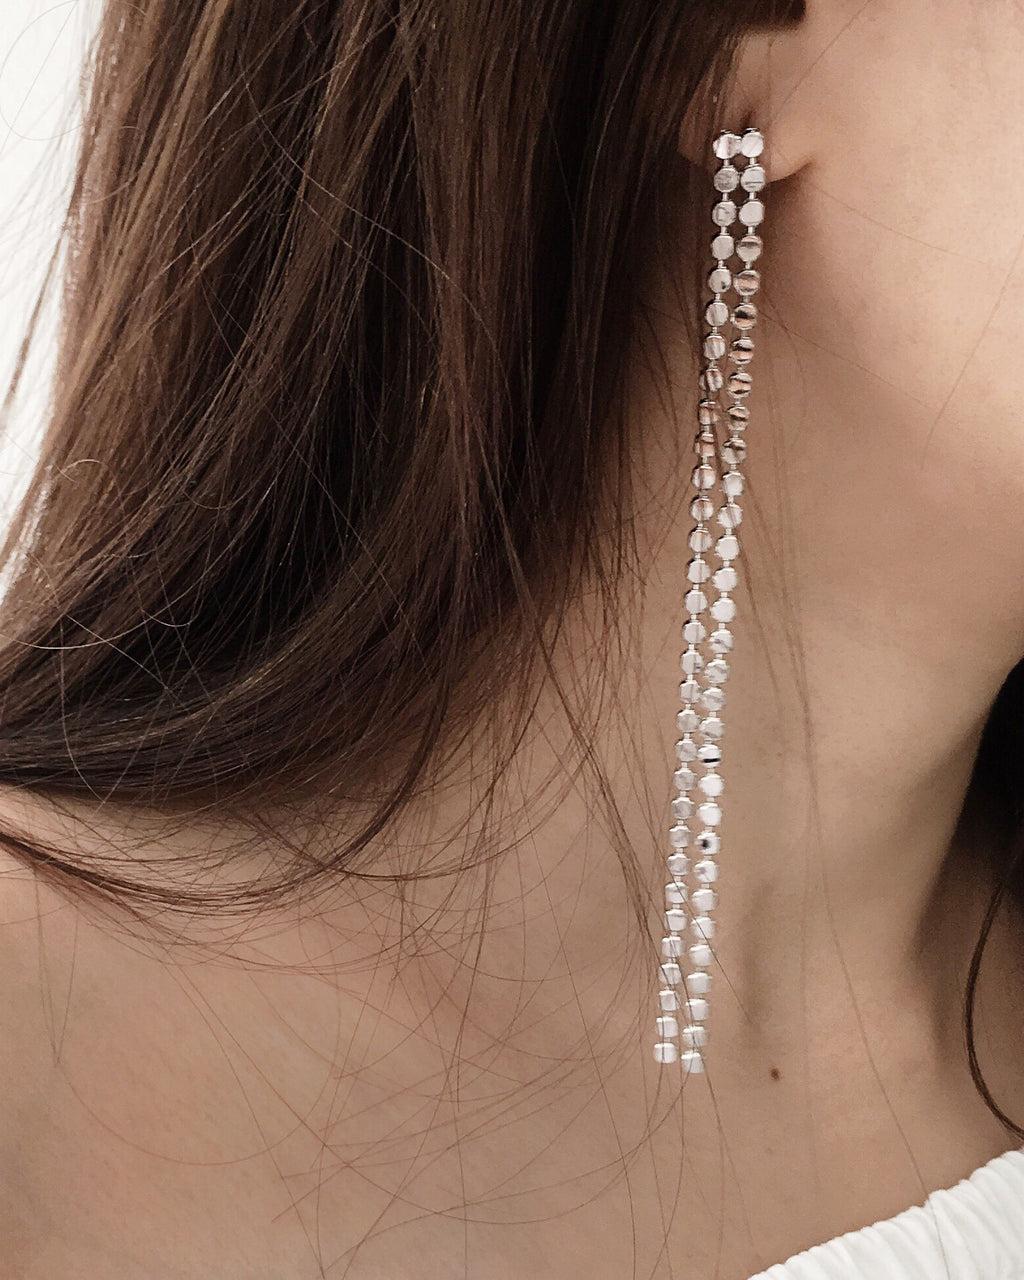 Close-up details of the silver Lola Double Dangle Drop Earrings - The Hexad Jewelry